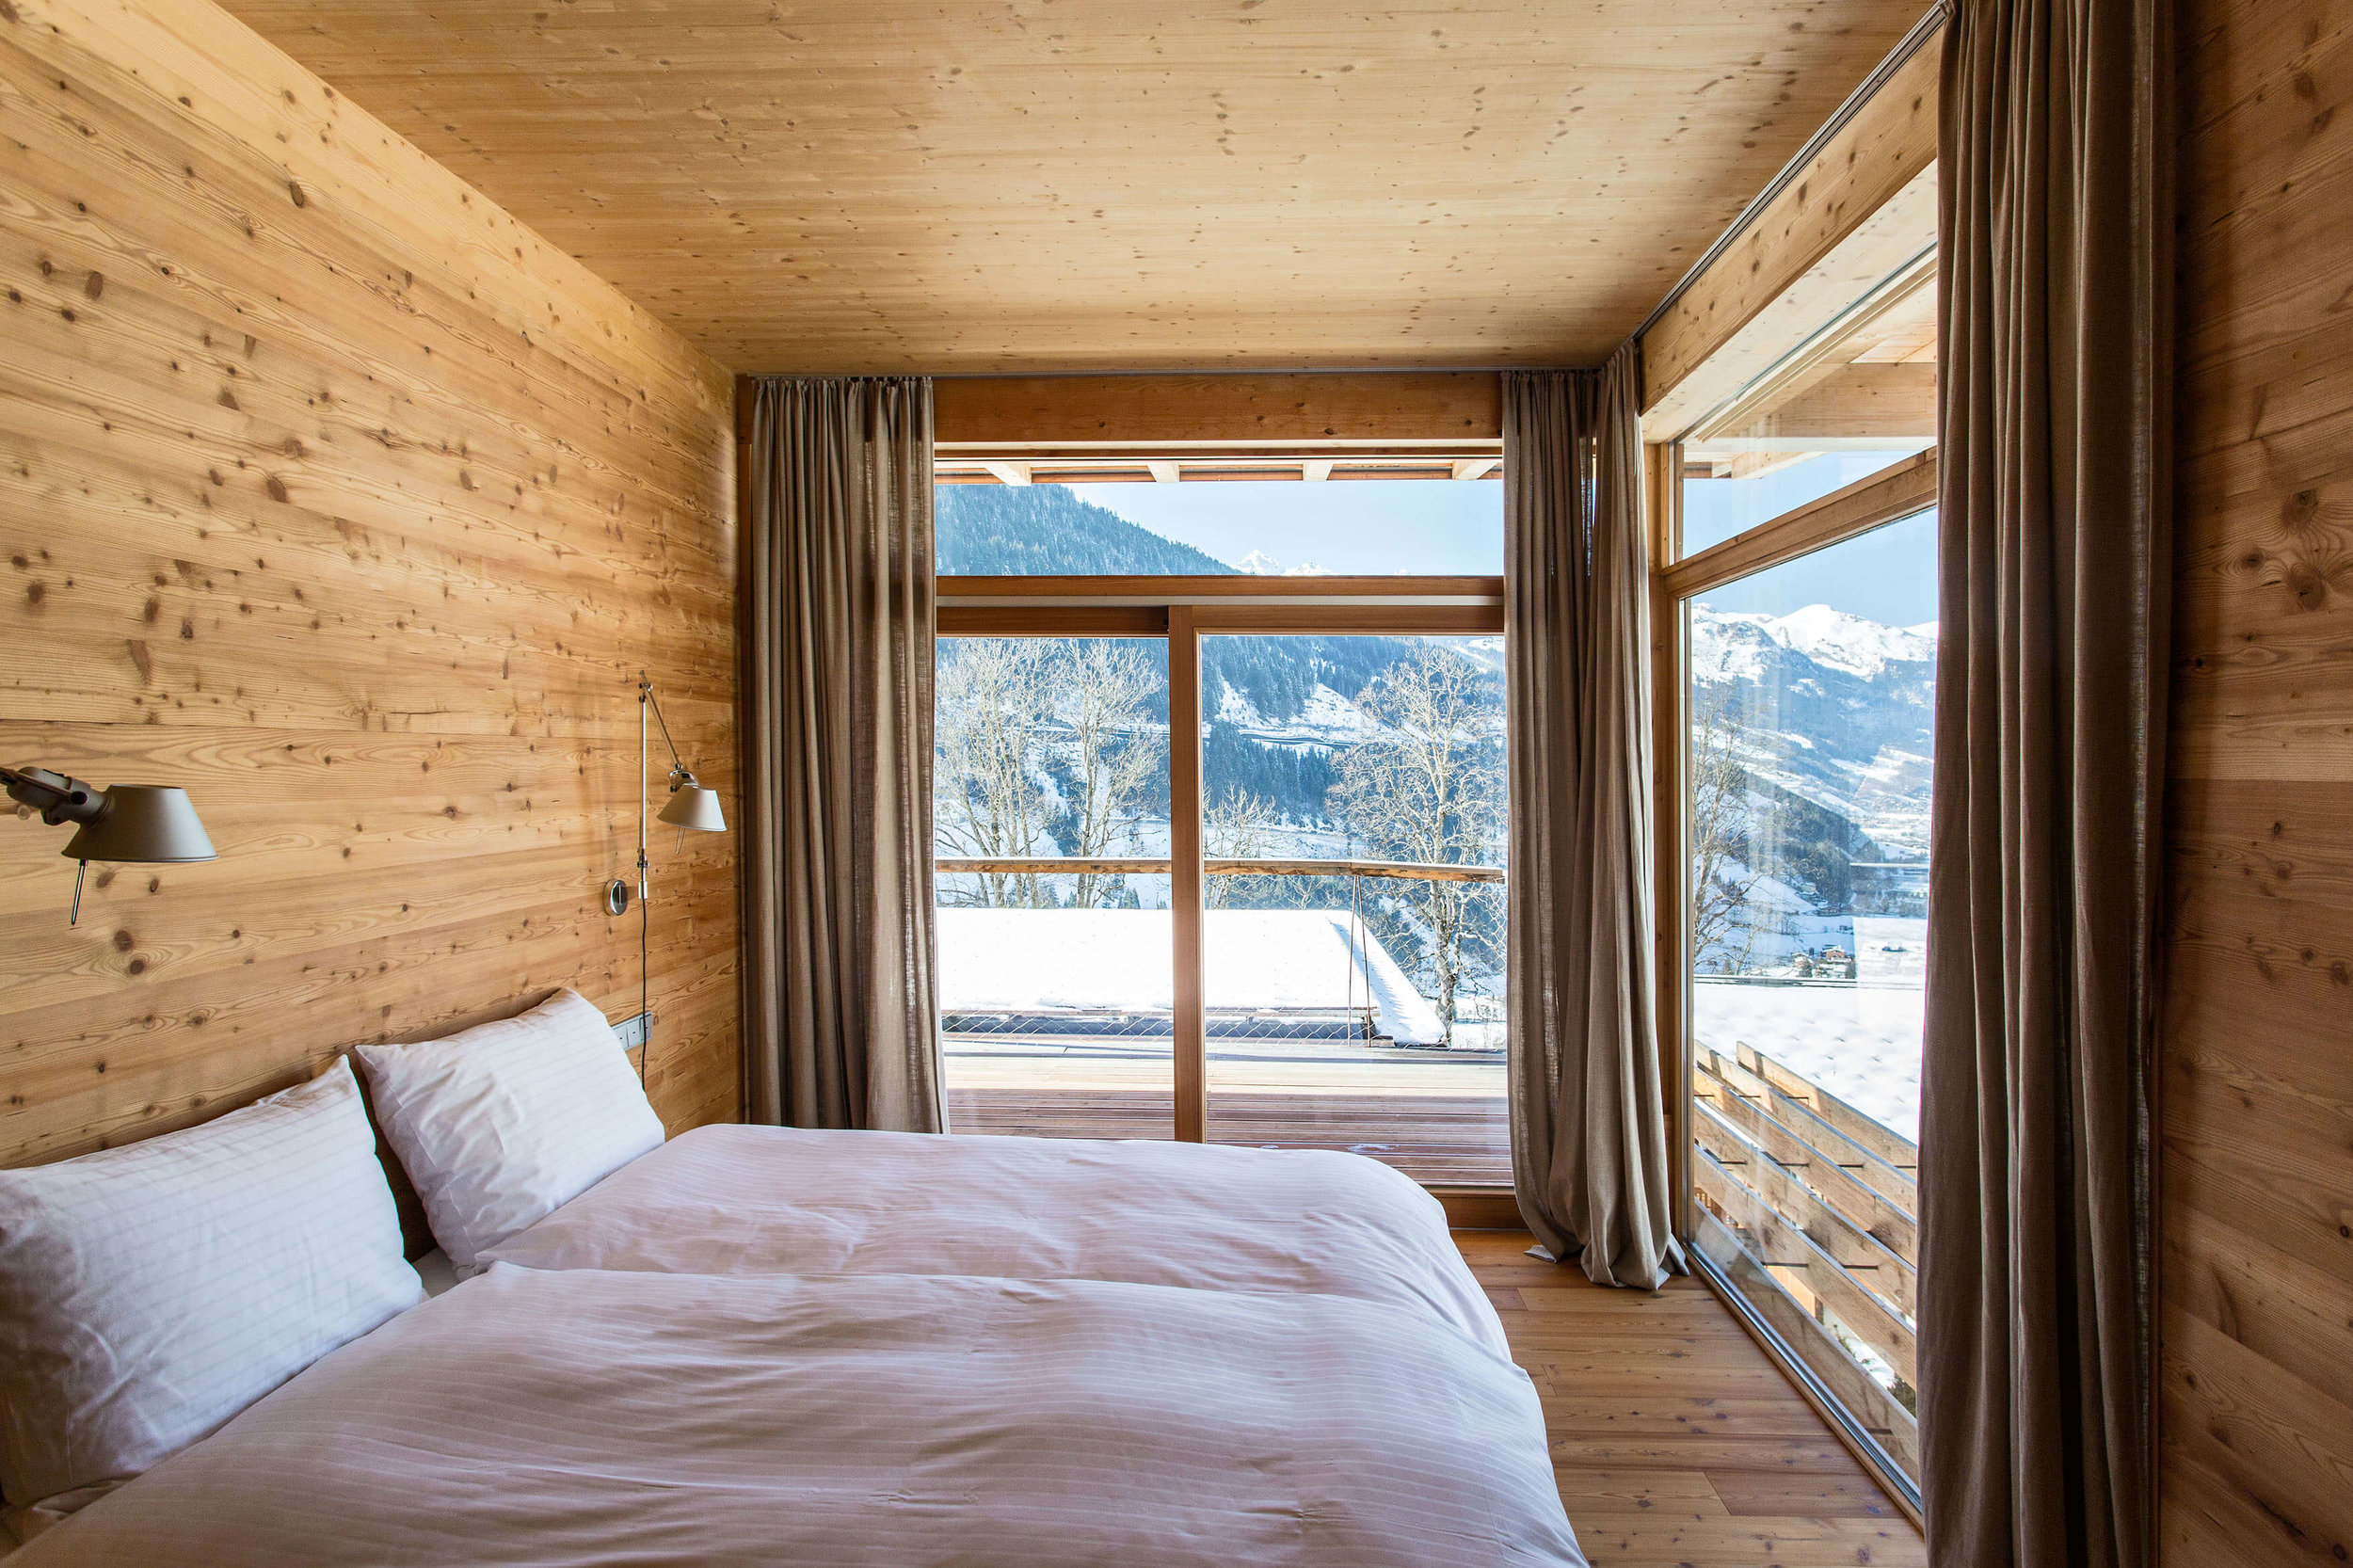 ALPENLOFTS - 5 bright, airy & cozy design lodges. Sustainably built by local architect Ike Ikrath, each of the @alpenlofts comes with a unique floor plan and well curated interior design. A perfect hide-away for you and yours (2-12 ppl) overlooking the entire valley!